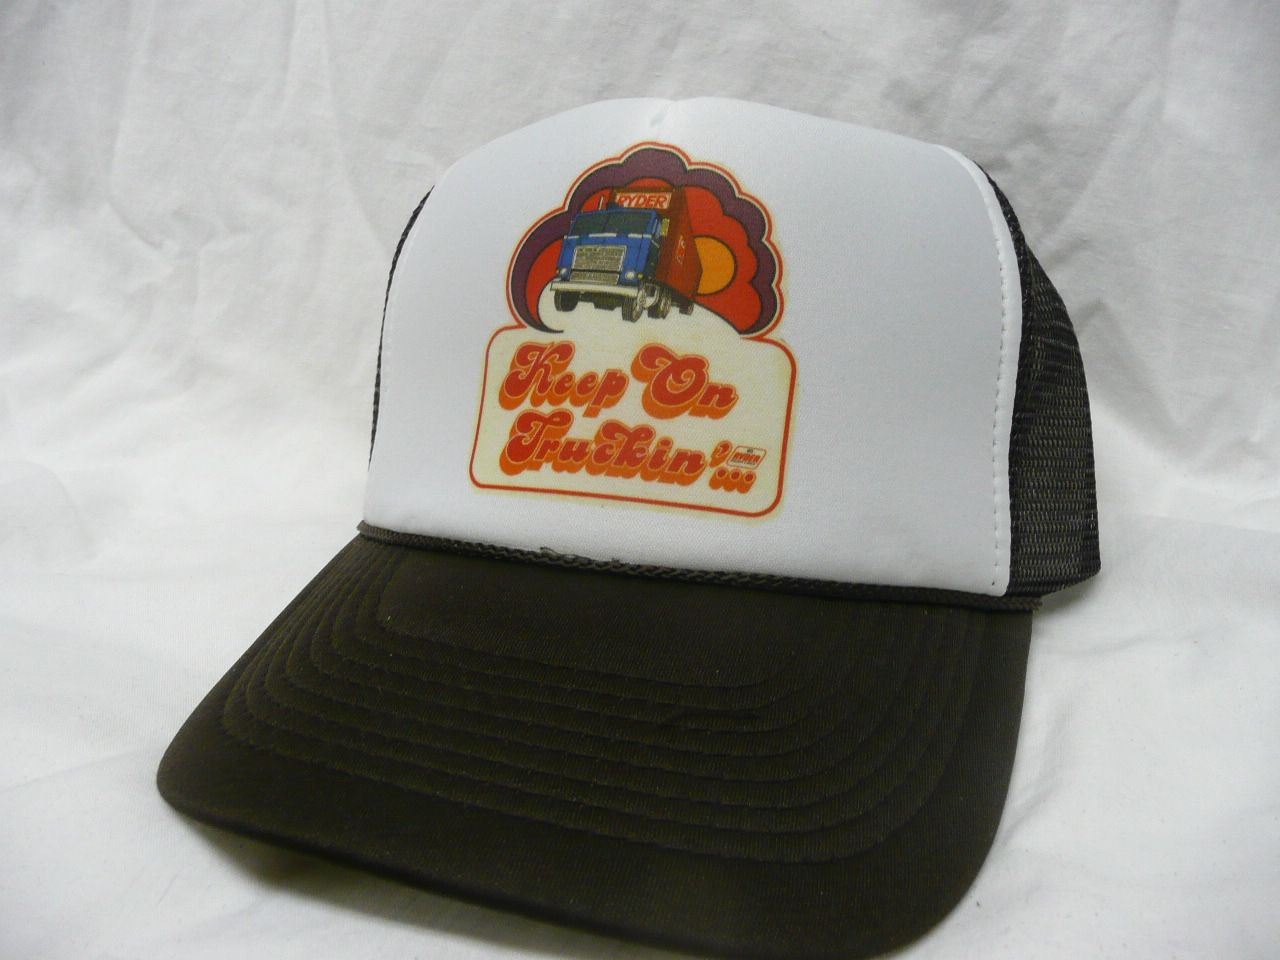 Ryder Keep on Truckin' Trucker Hat - Automobile, Trucks & more Hats